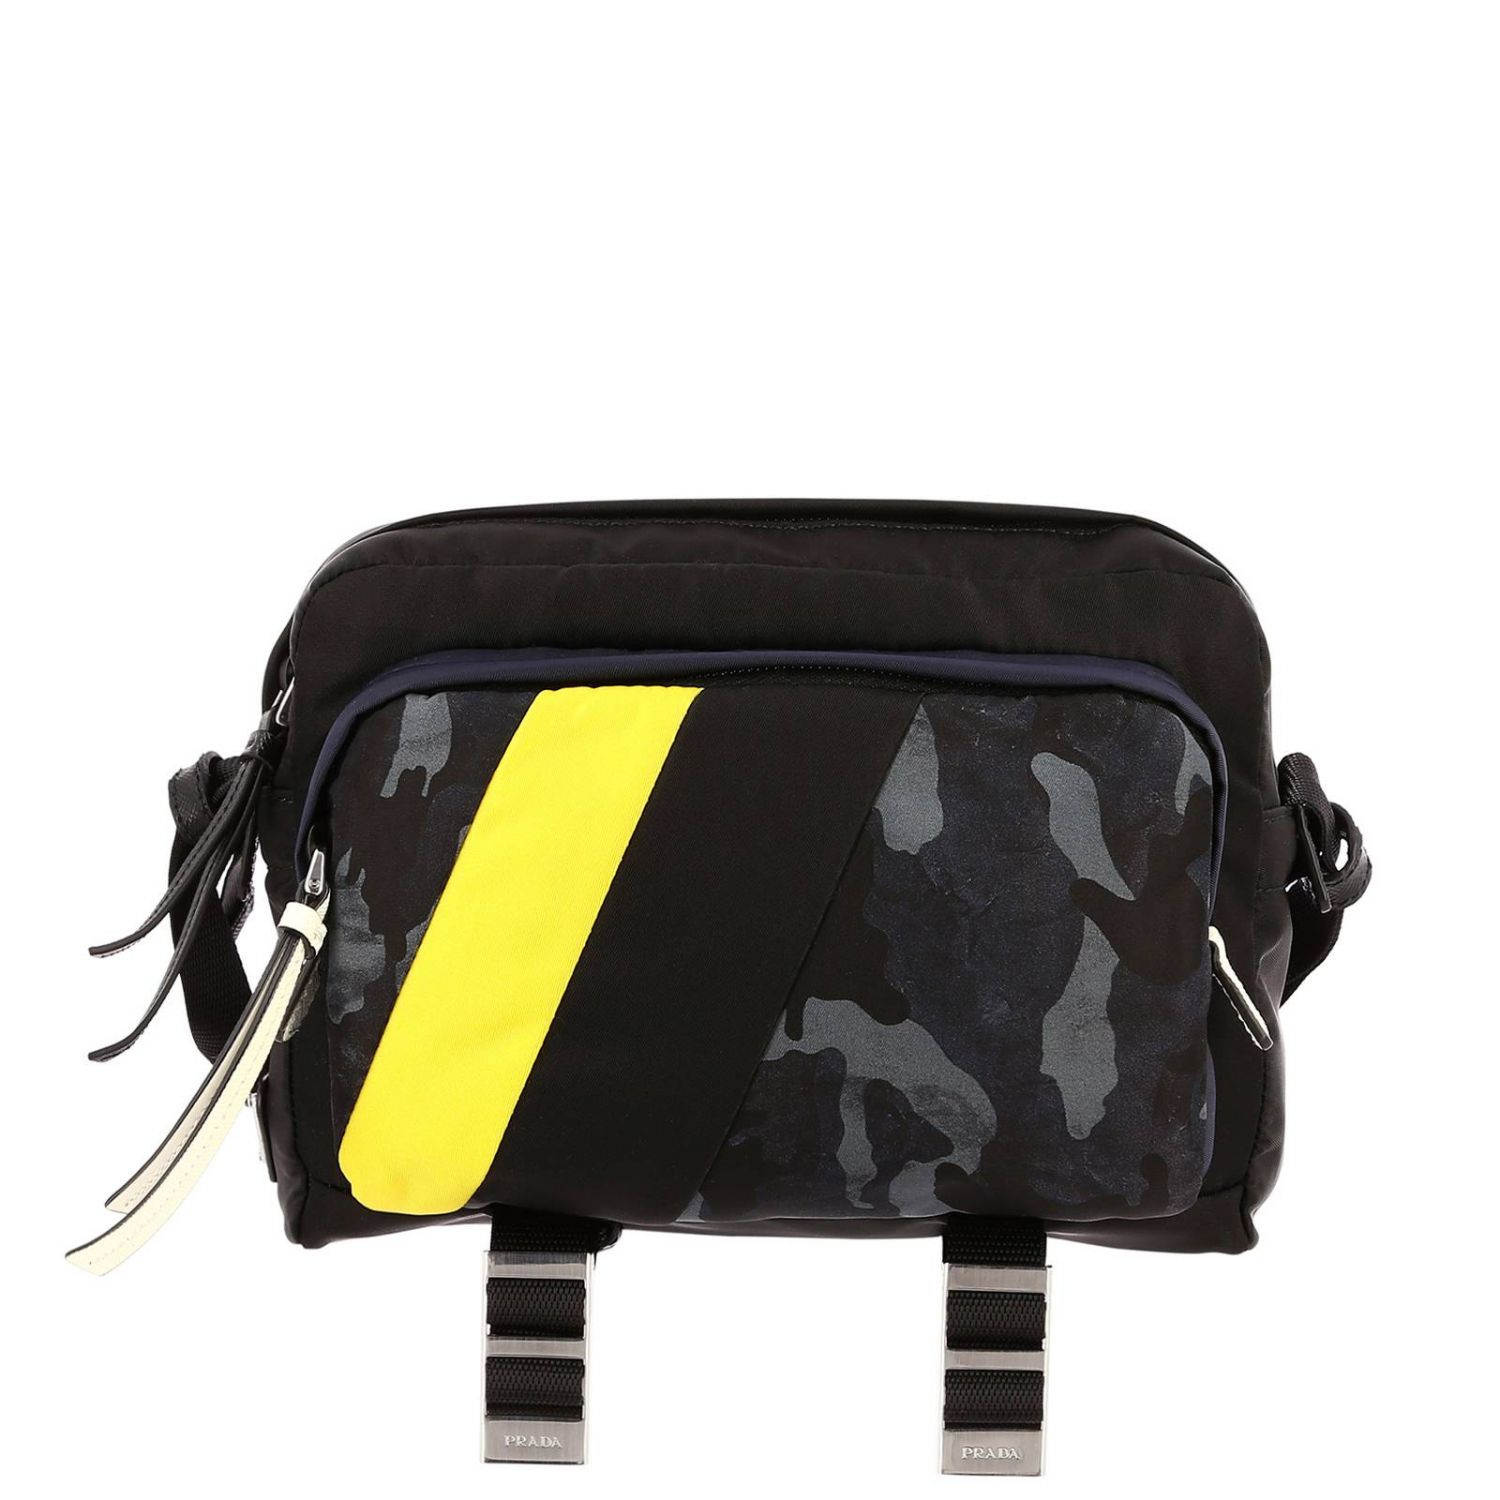 Bandolier Camera Bag in Nylon with camouflage details and contrasts black 1